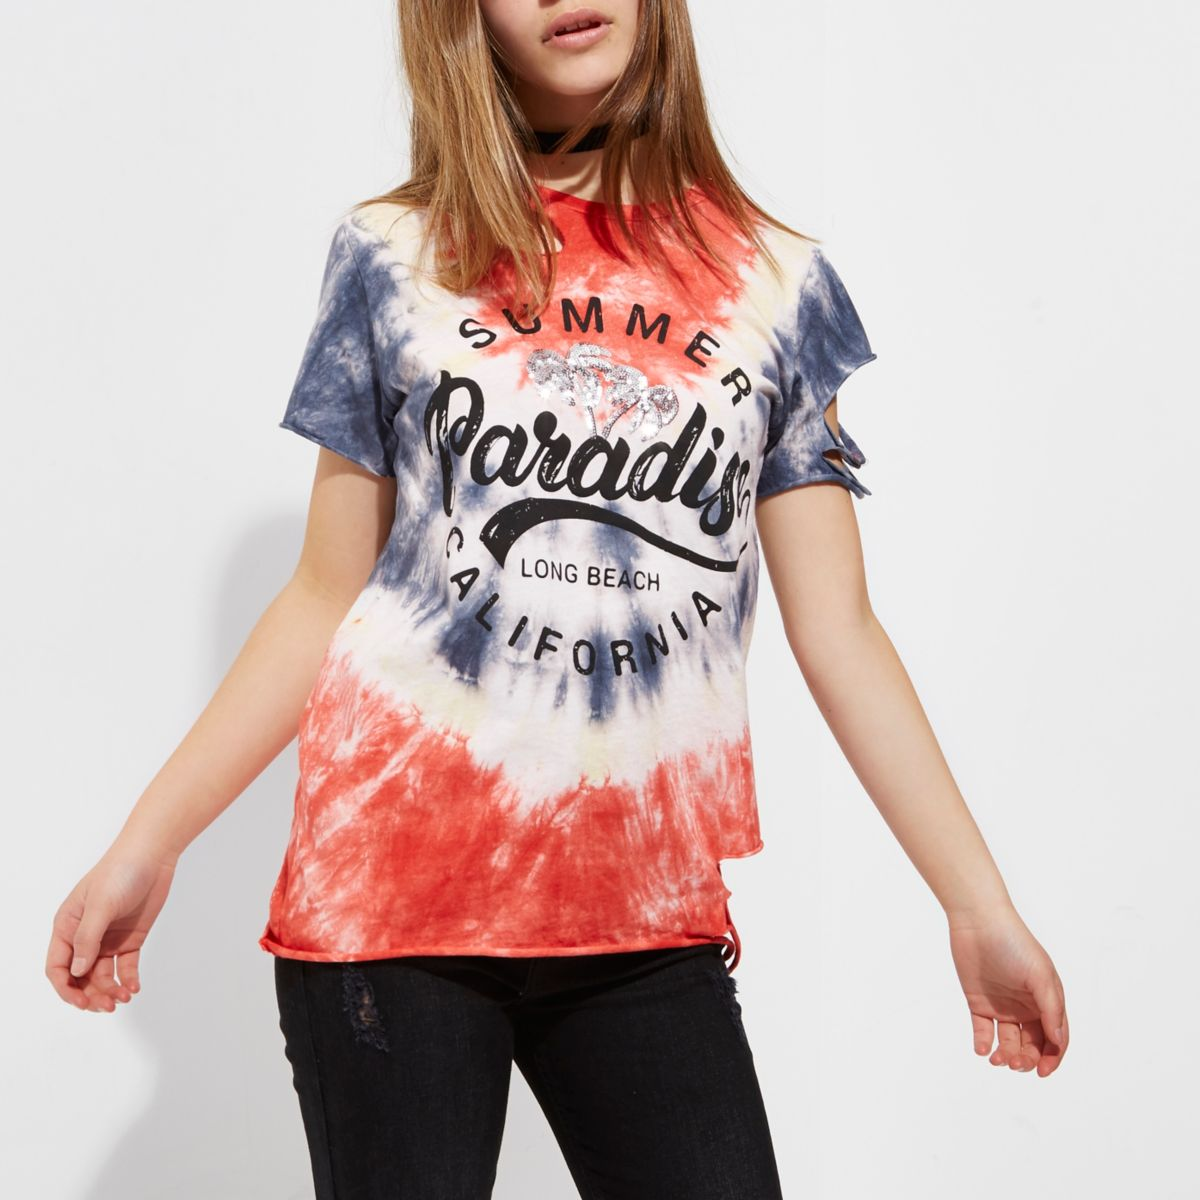 Petite red tie dye 'summer paradise' T-shirt